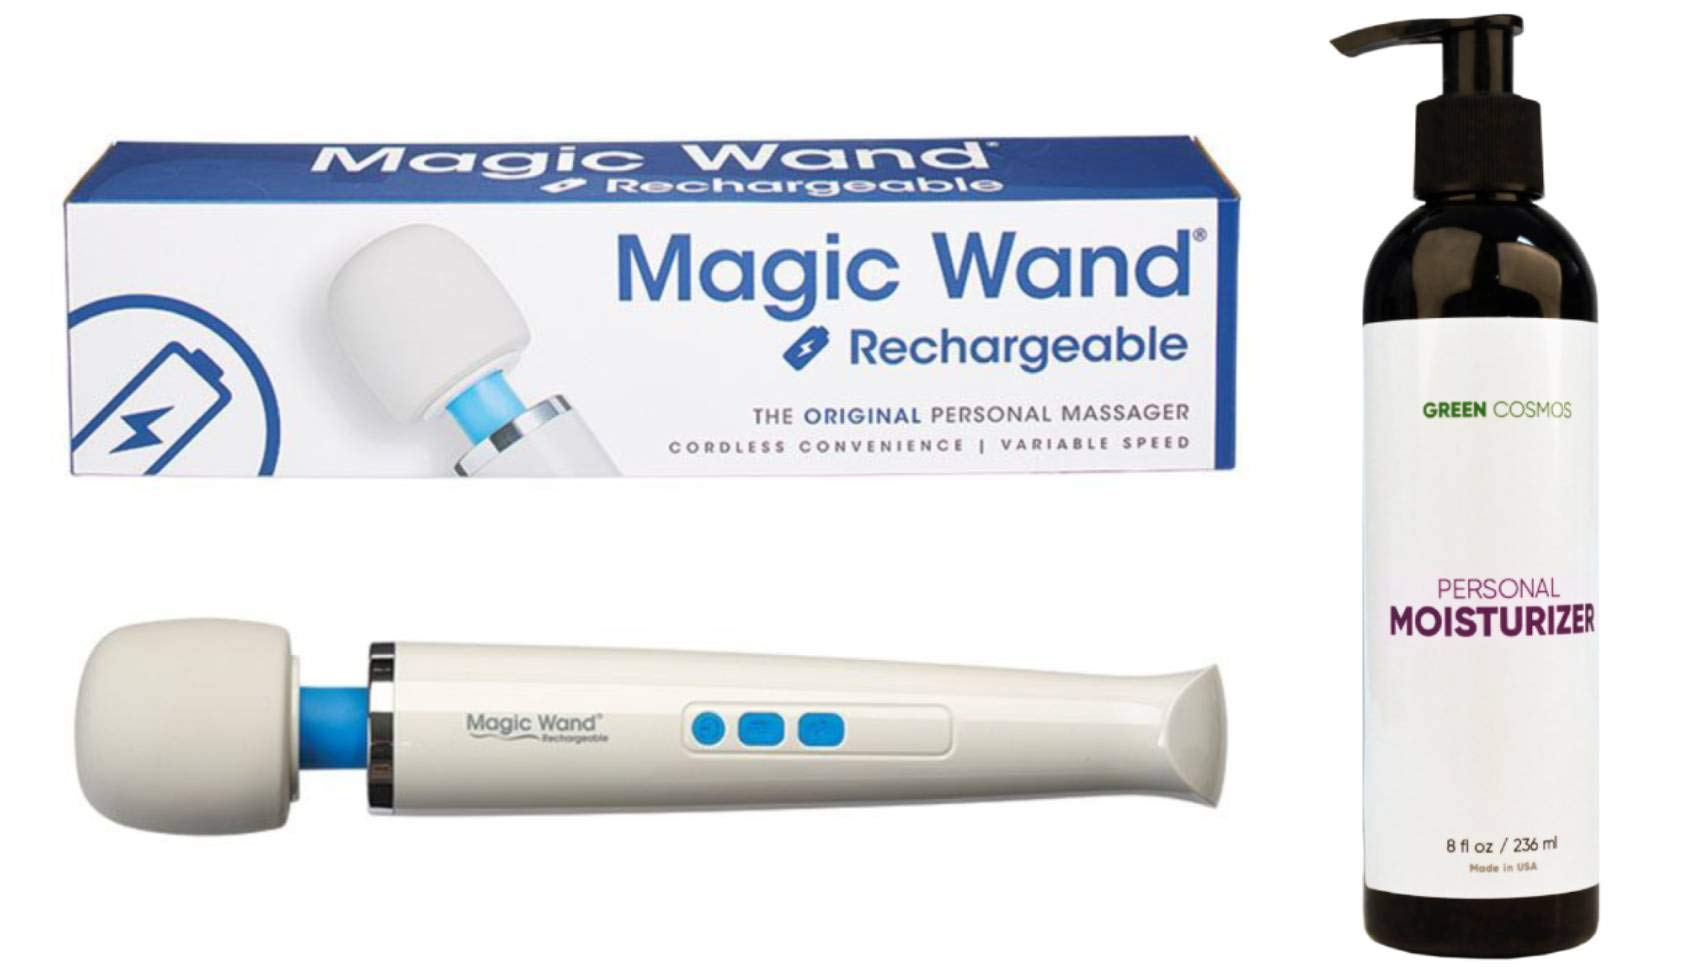 Magic Wand Rechargeable with Green Cosmos Personal Moisturizer - 8 oz